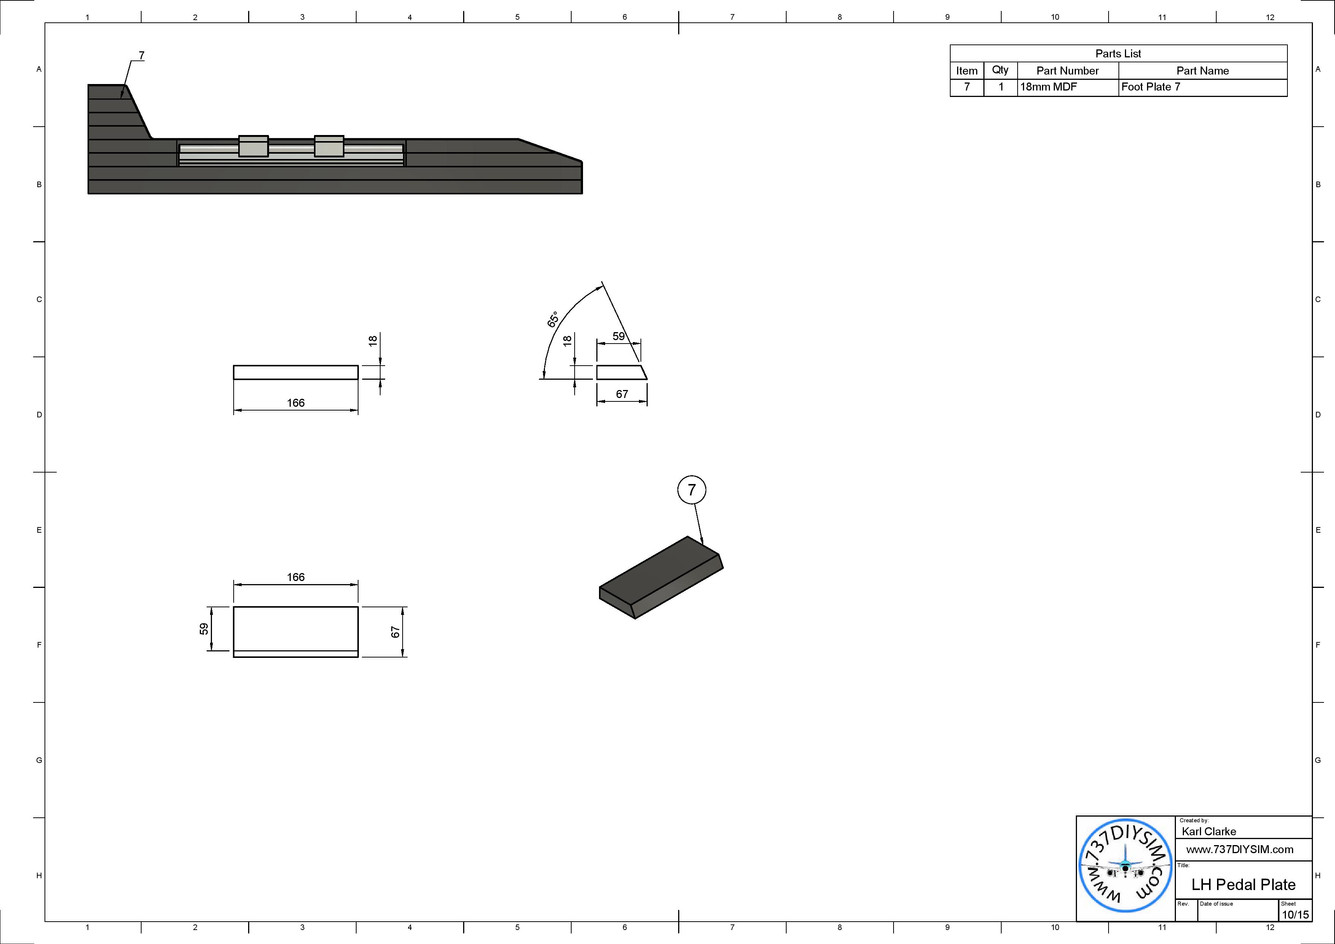 LH Pedal Plate Drawing v1-page-010.jpg